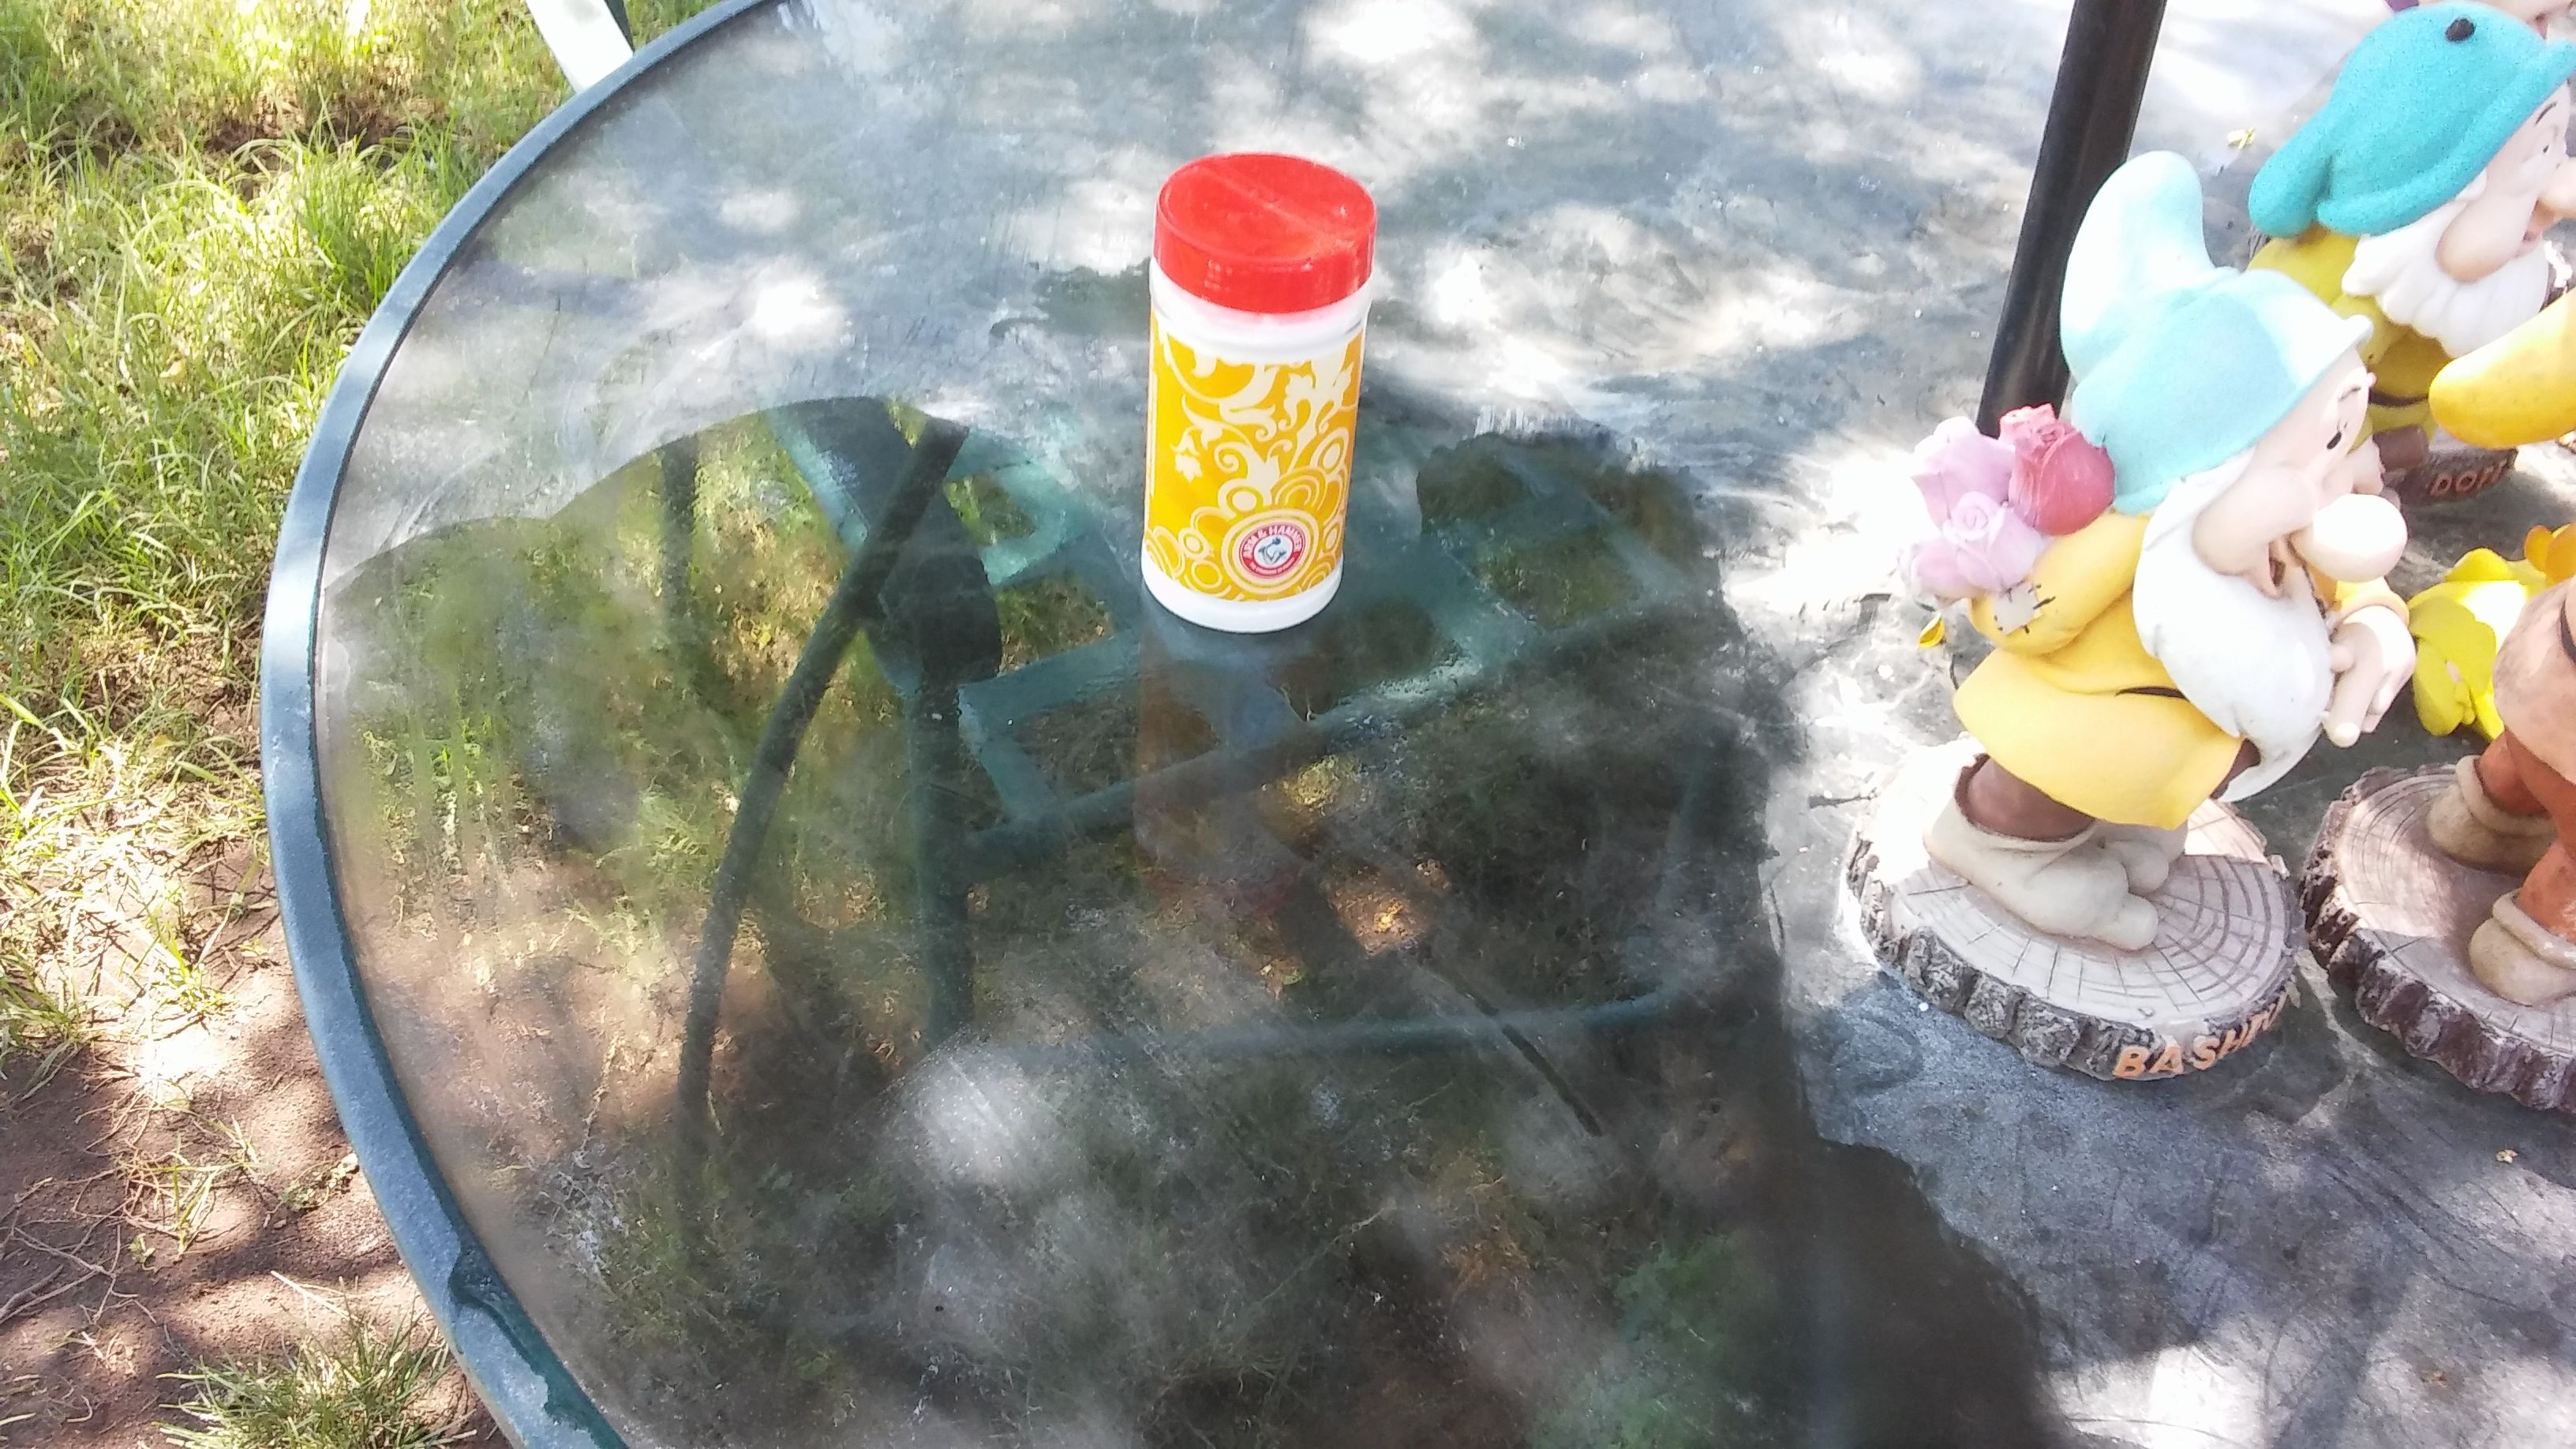 Arm and hammer baking soda cleaned the dirt and hard water